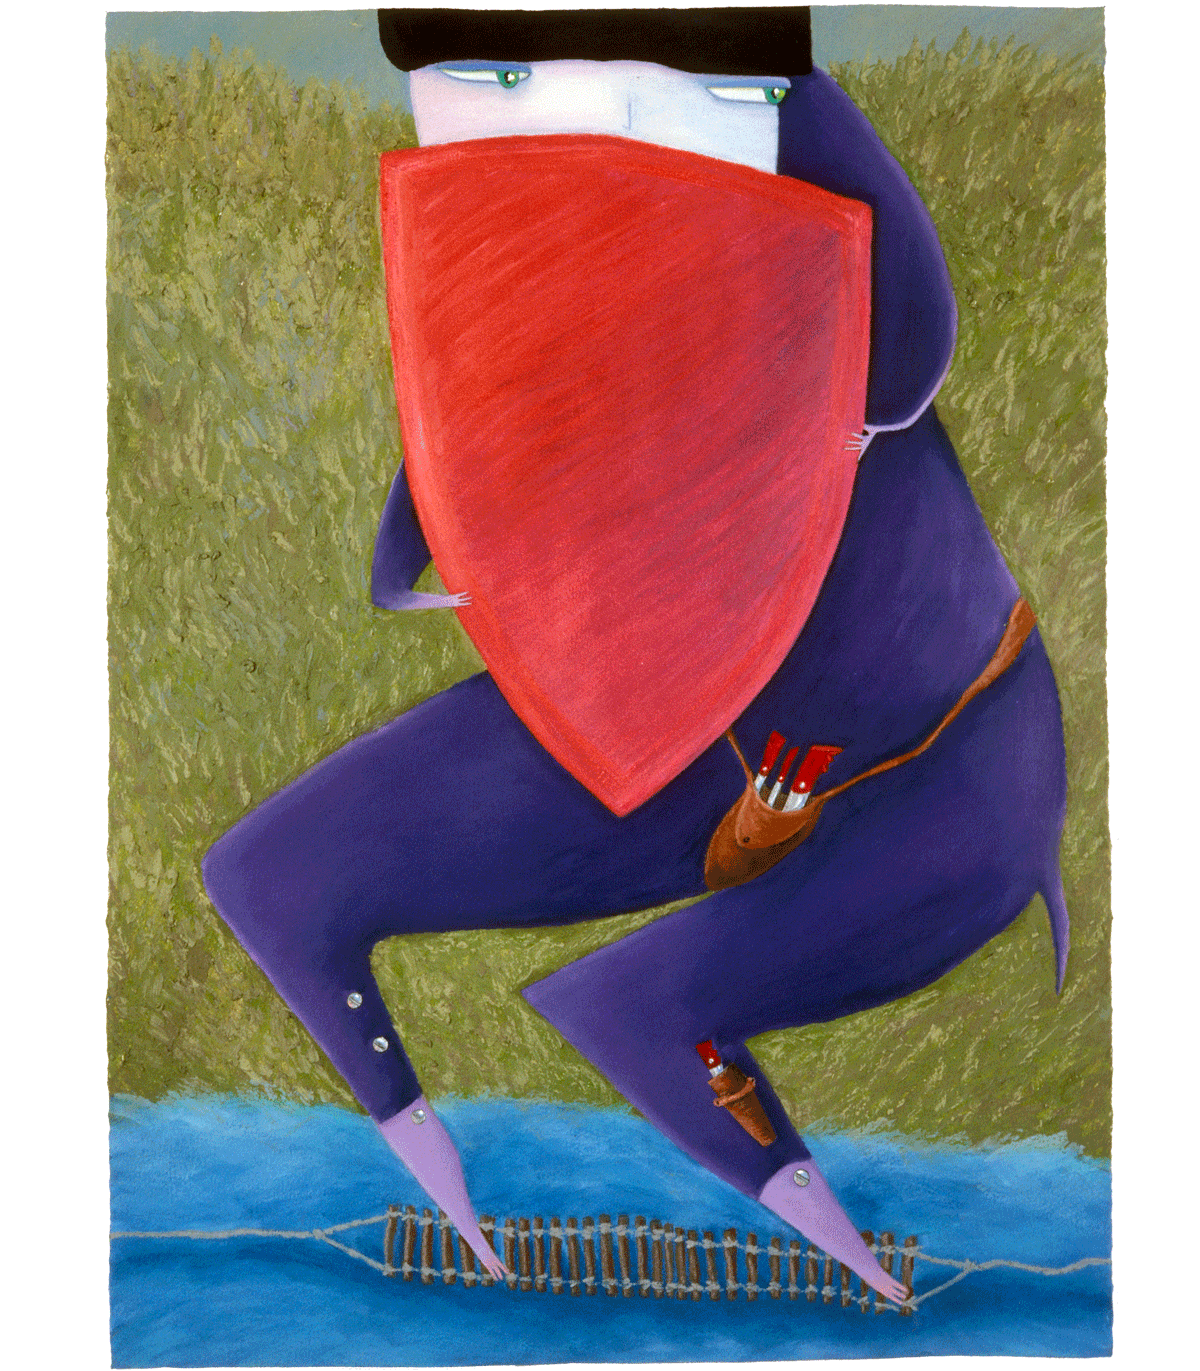 virginiahalstead.com/Paintings/I-can-face-the-critics.png